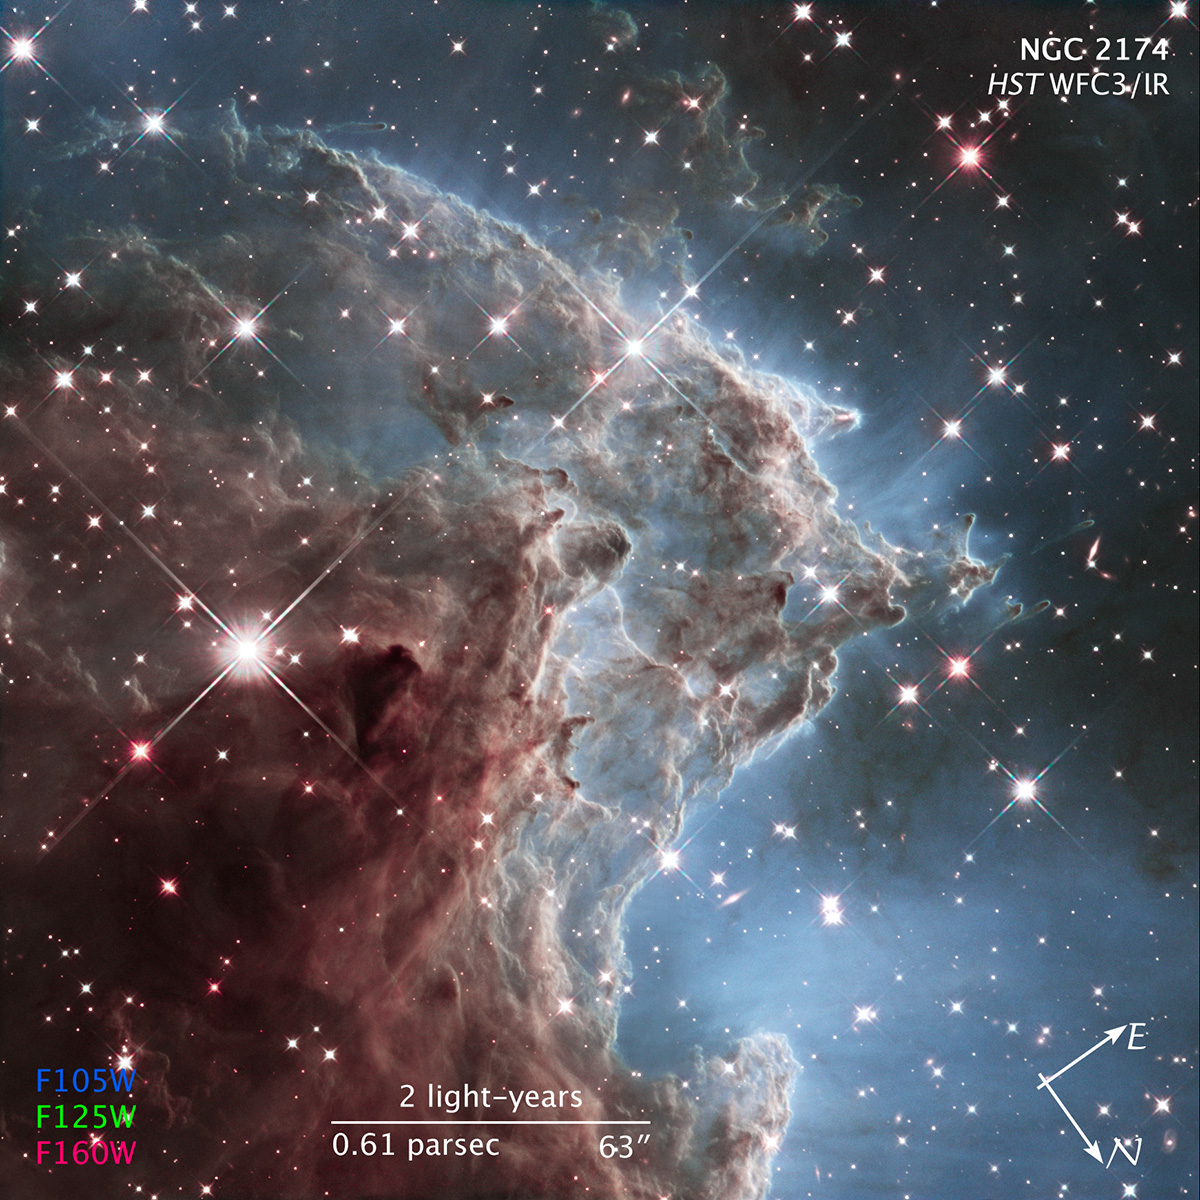 Credit: NASA, ESA, and the Hubble Heritage Team (STScI/AURA) http://hubblesite.org/image/3339/category/107-illustrations http://hubblesite.org/image/3336/category/33-emission-nebulae